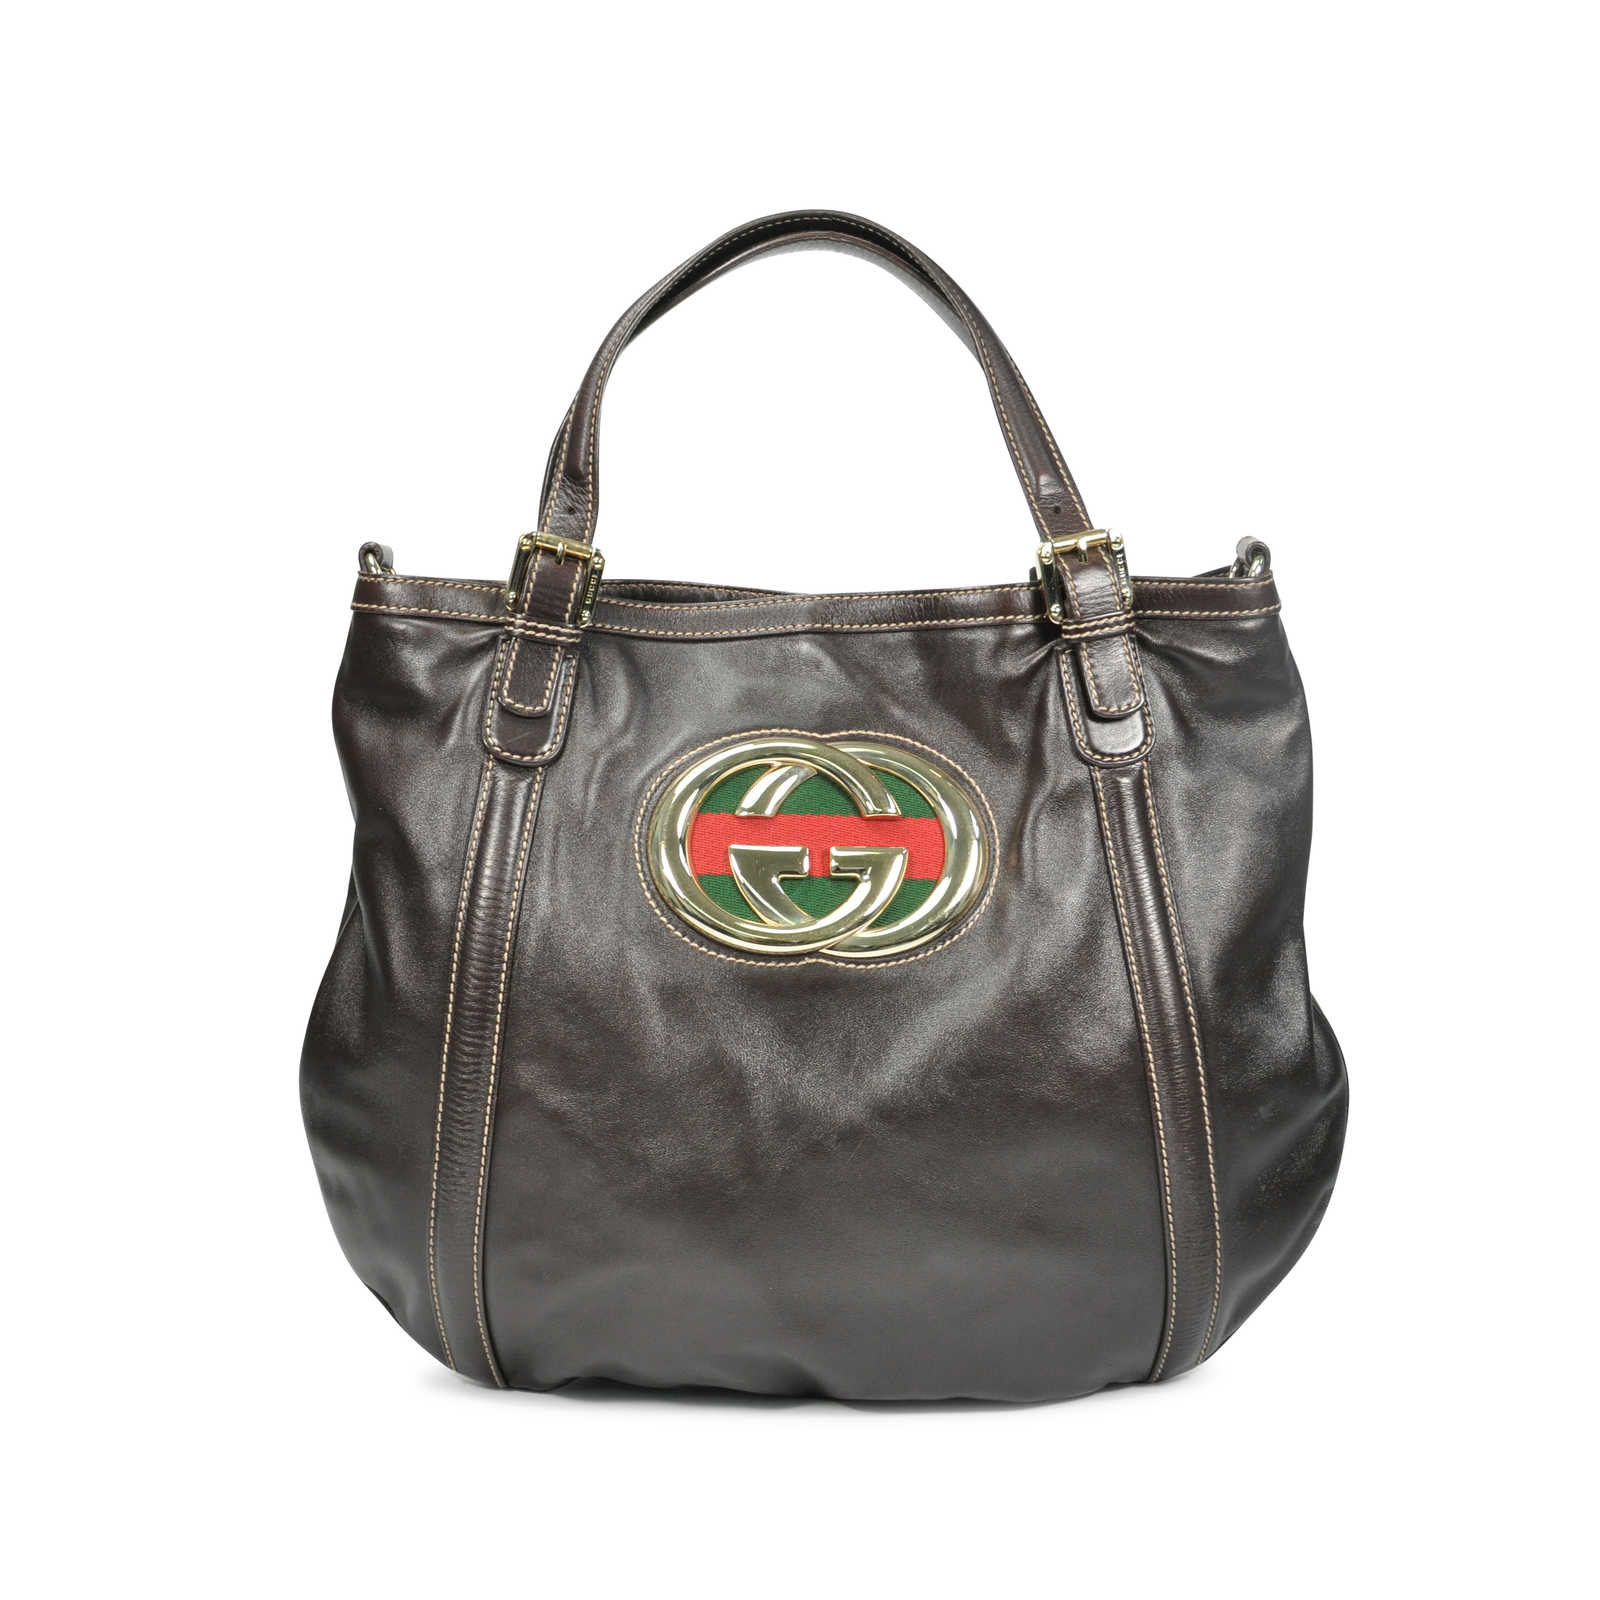 3d2ae2bf Gucci Bag Second Hand Philippines | City of Kenmore, Washington